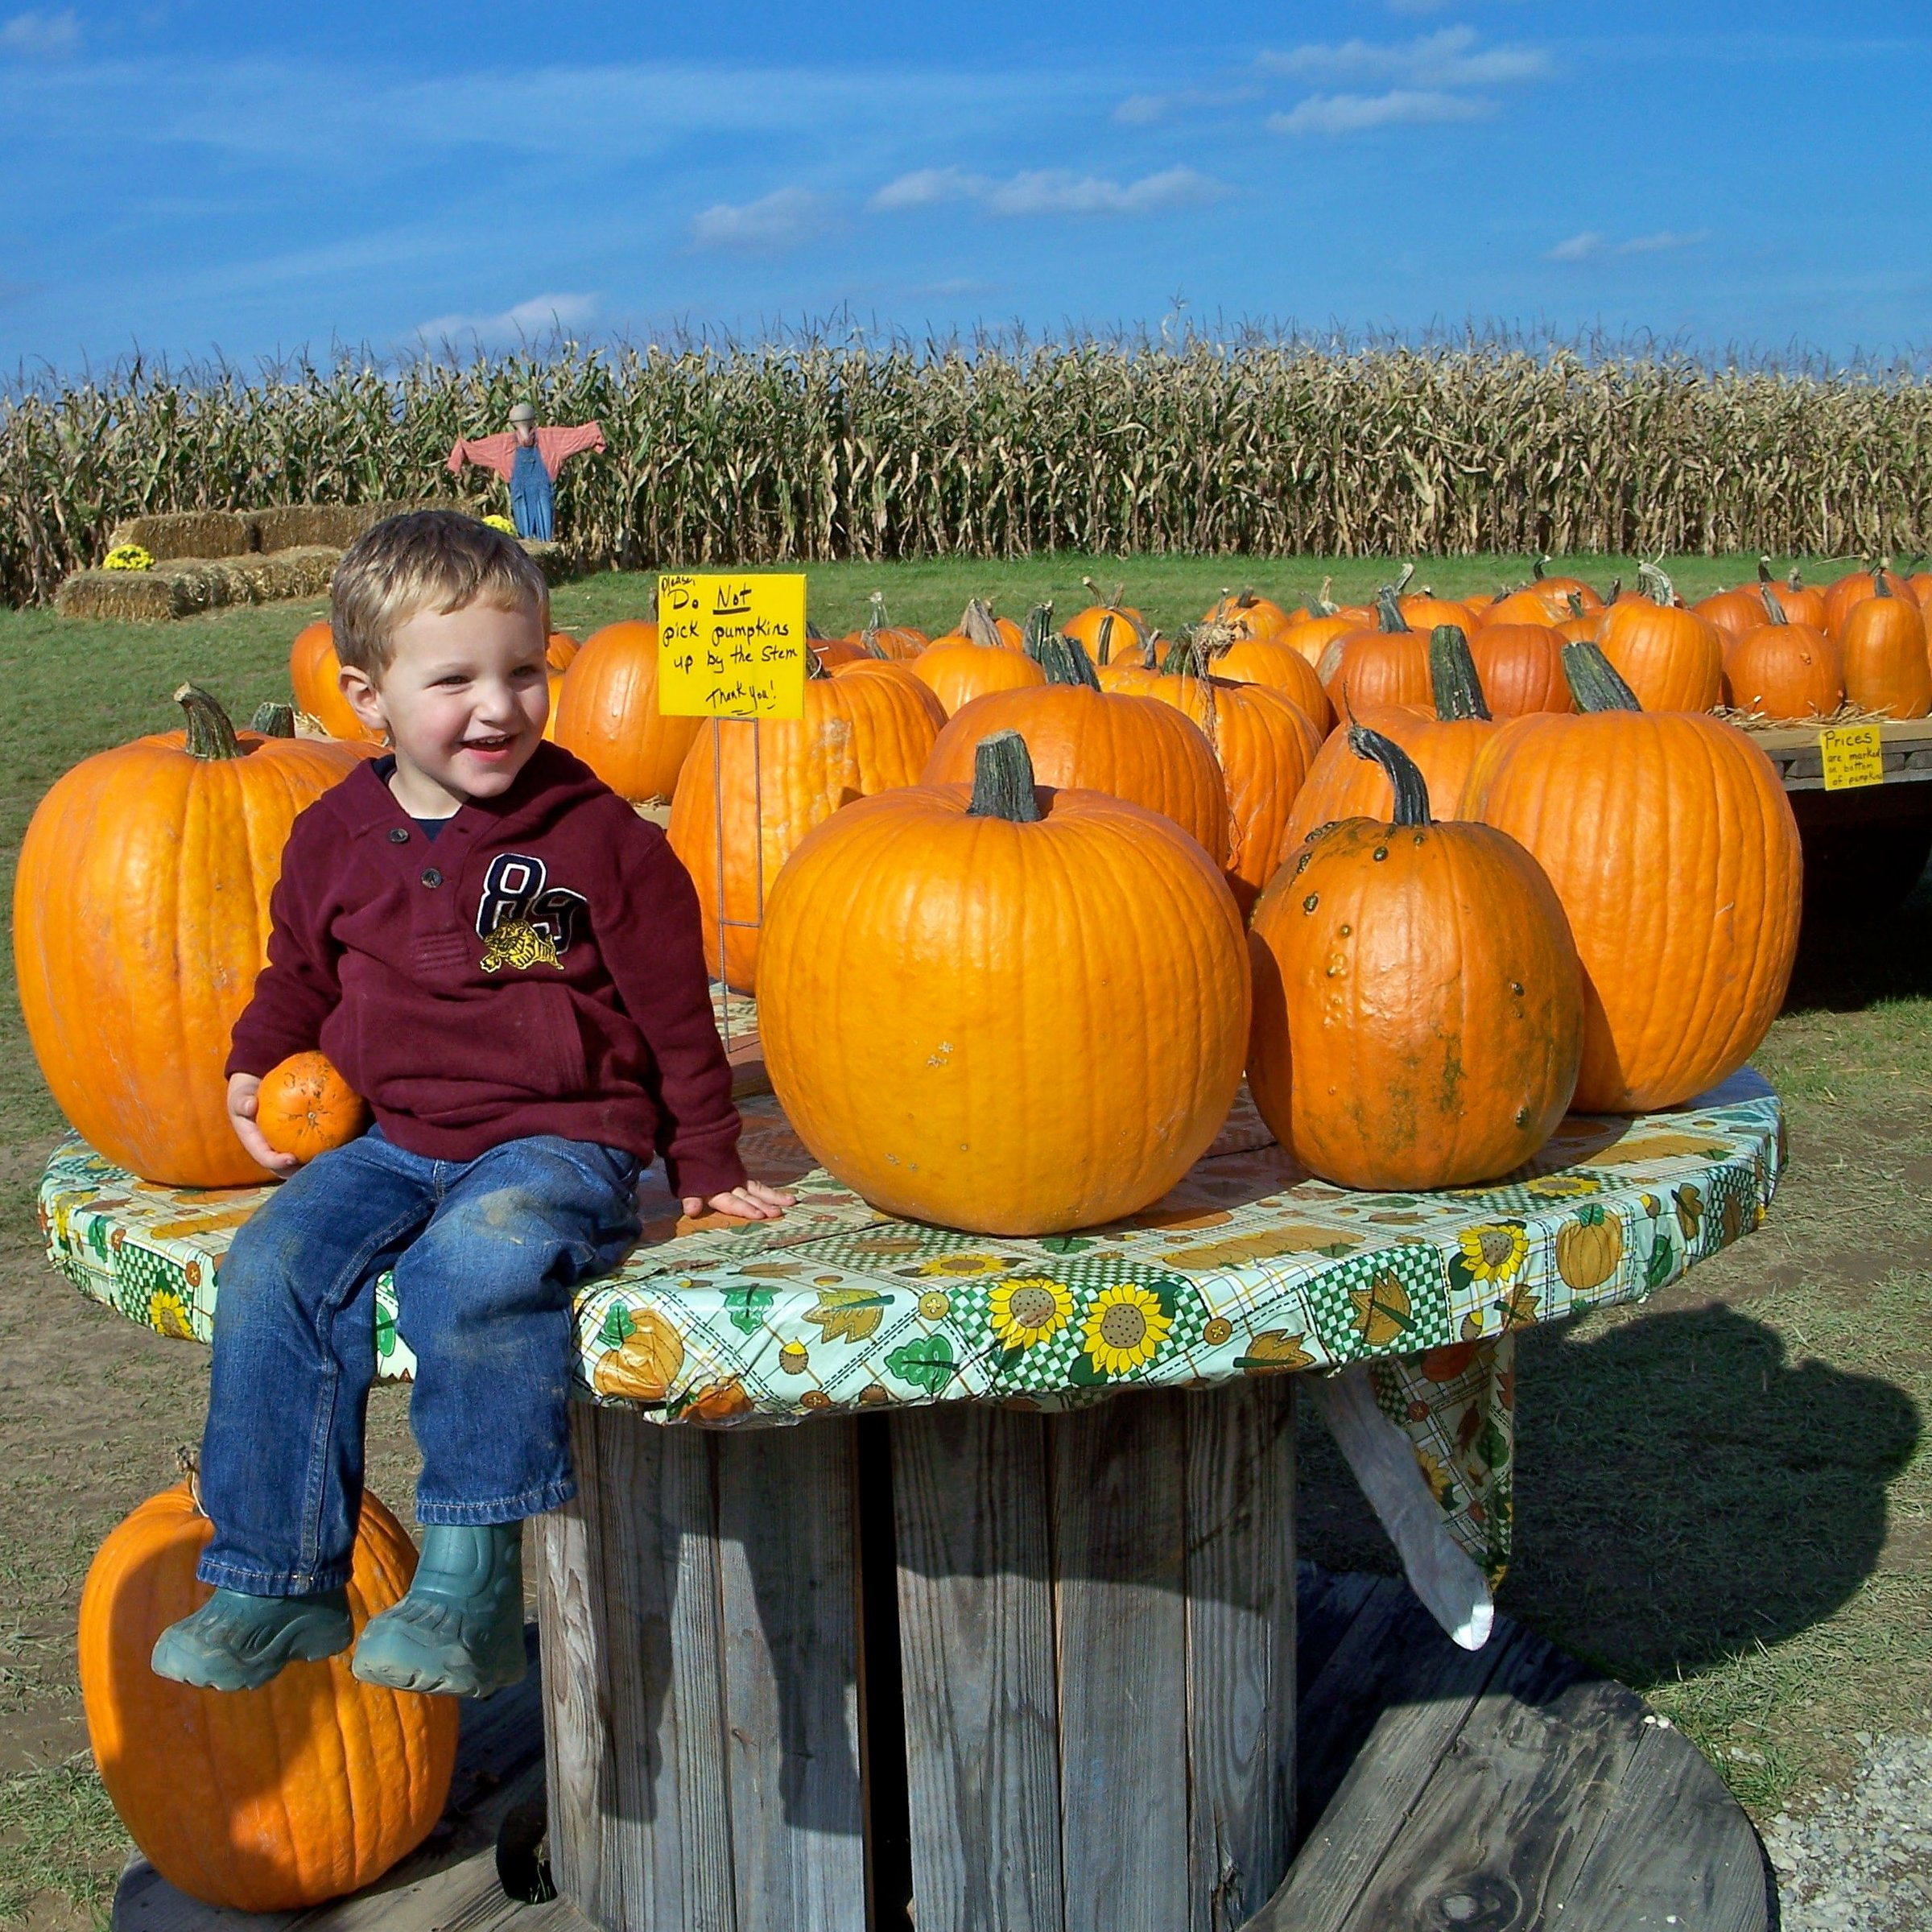 evan with pumpkins